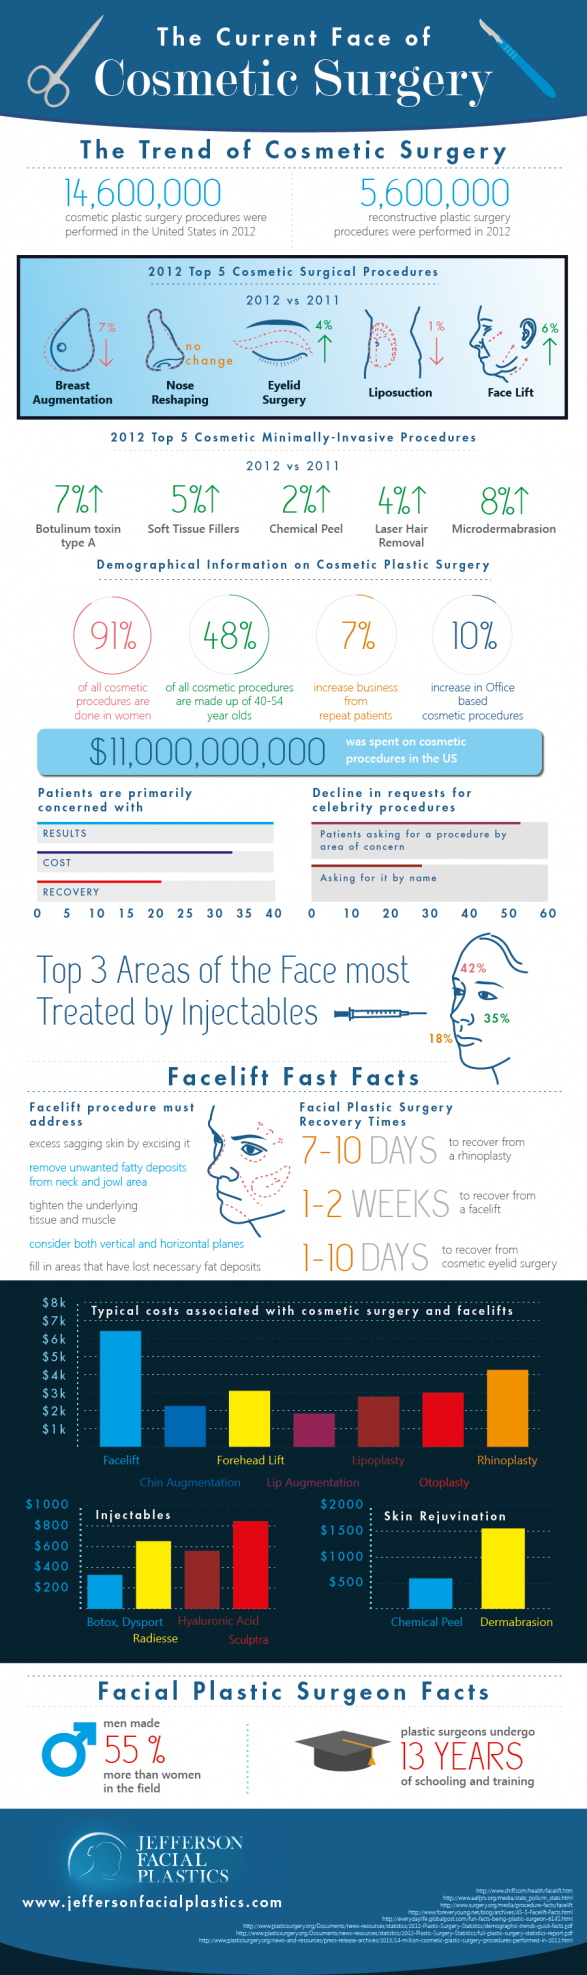 The Current Face of Cosmetic Surgery